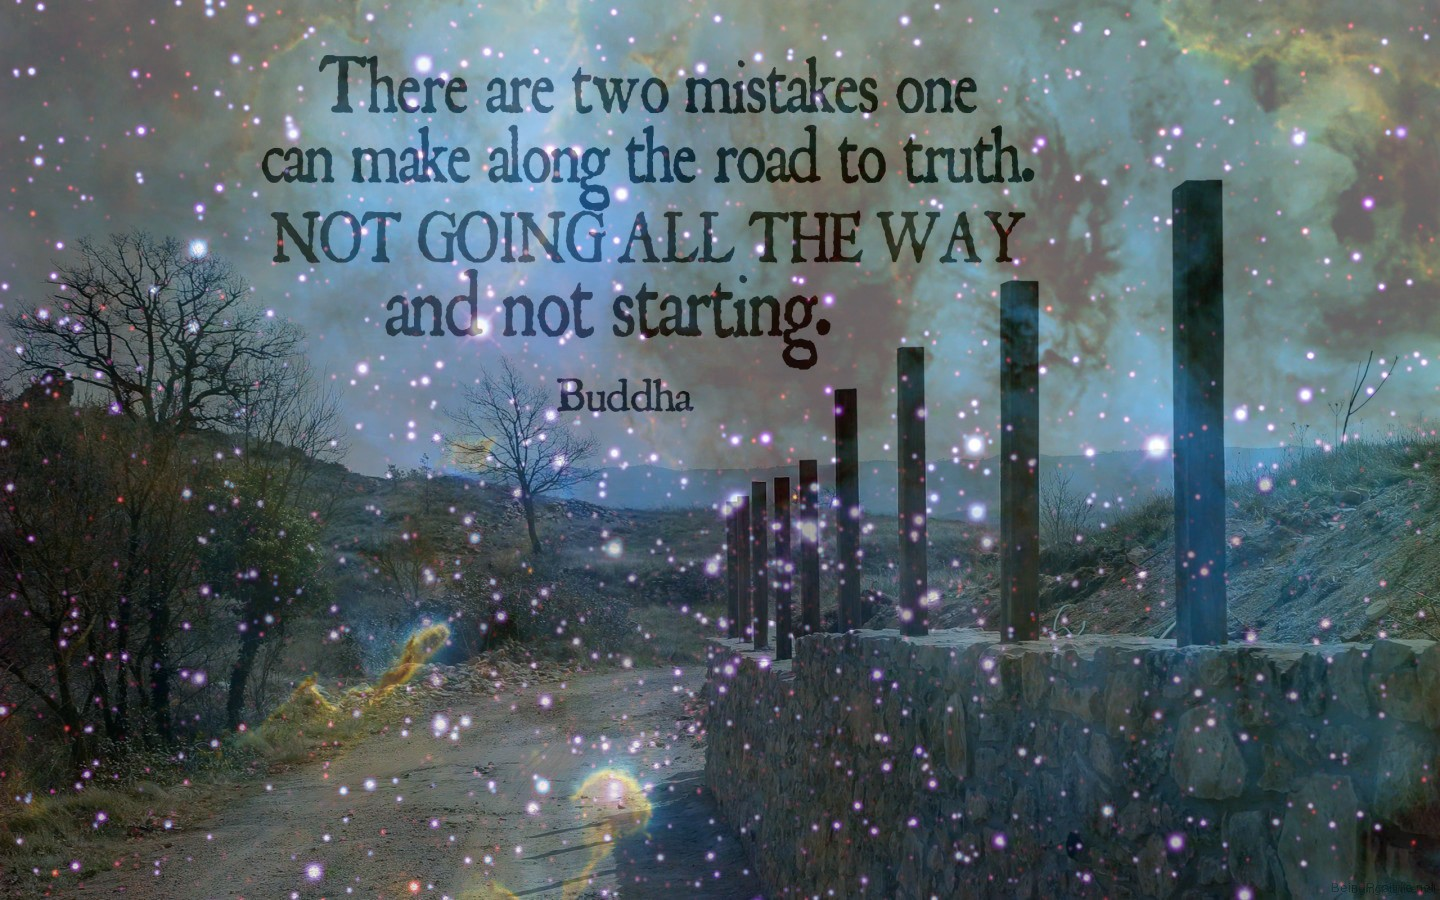 There are two mistakes one can make along the road to truth.  Not going all the way, and not starting.